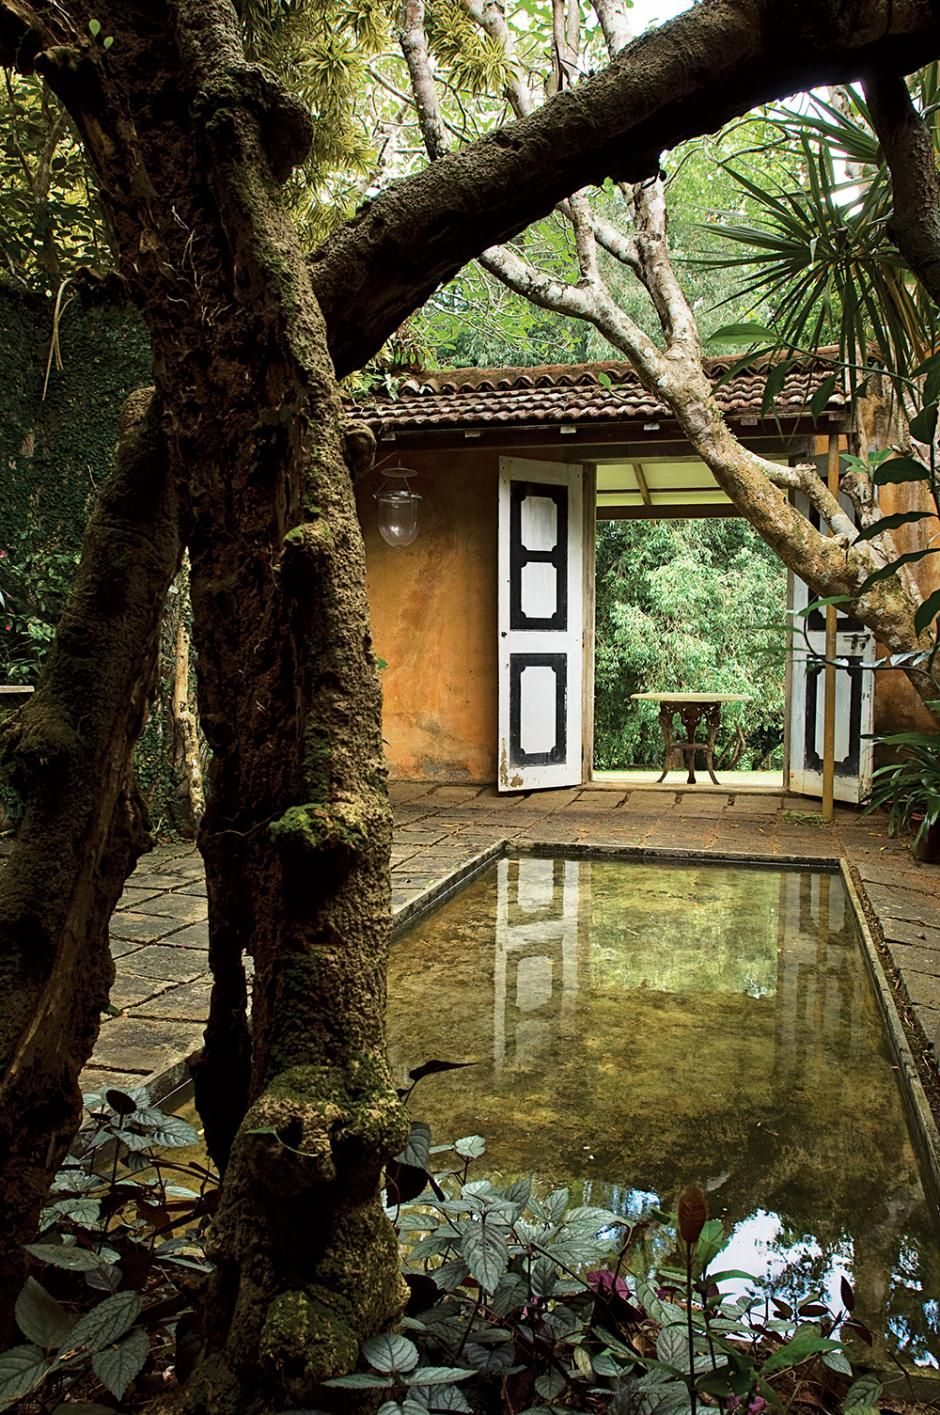 a photographic tour of the beautiful gardens of two sri Lankan